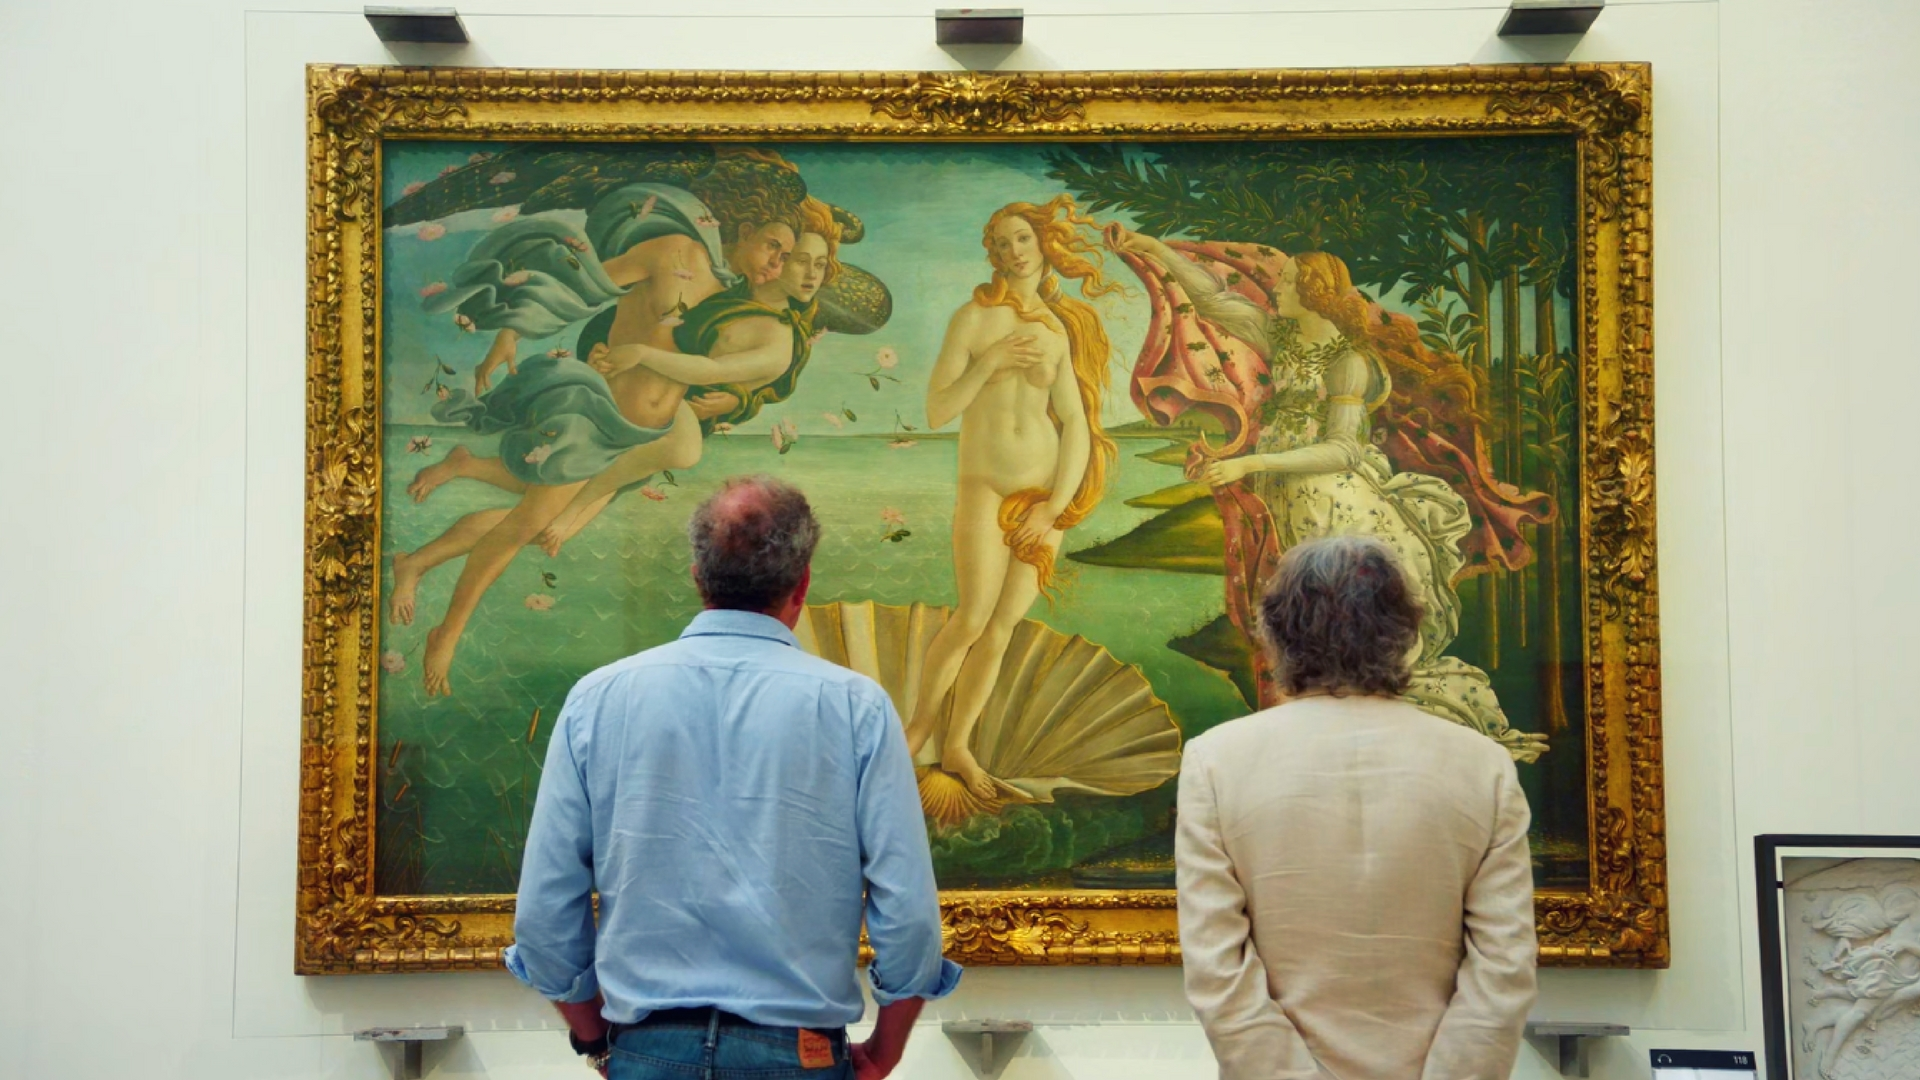 Jeremy Clarkson and James May look at art in Italy during The Grand Tour Episode 3